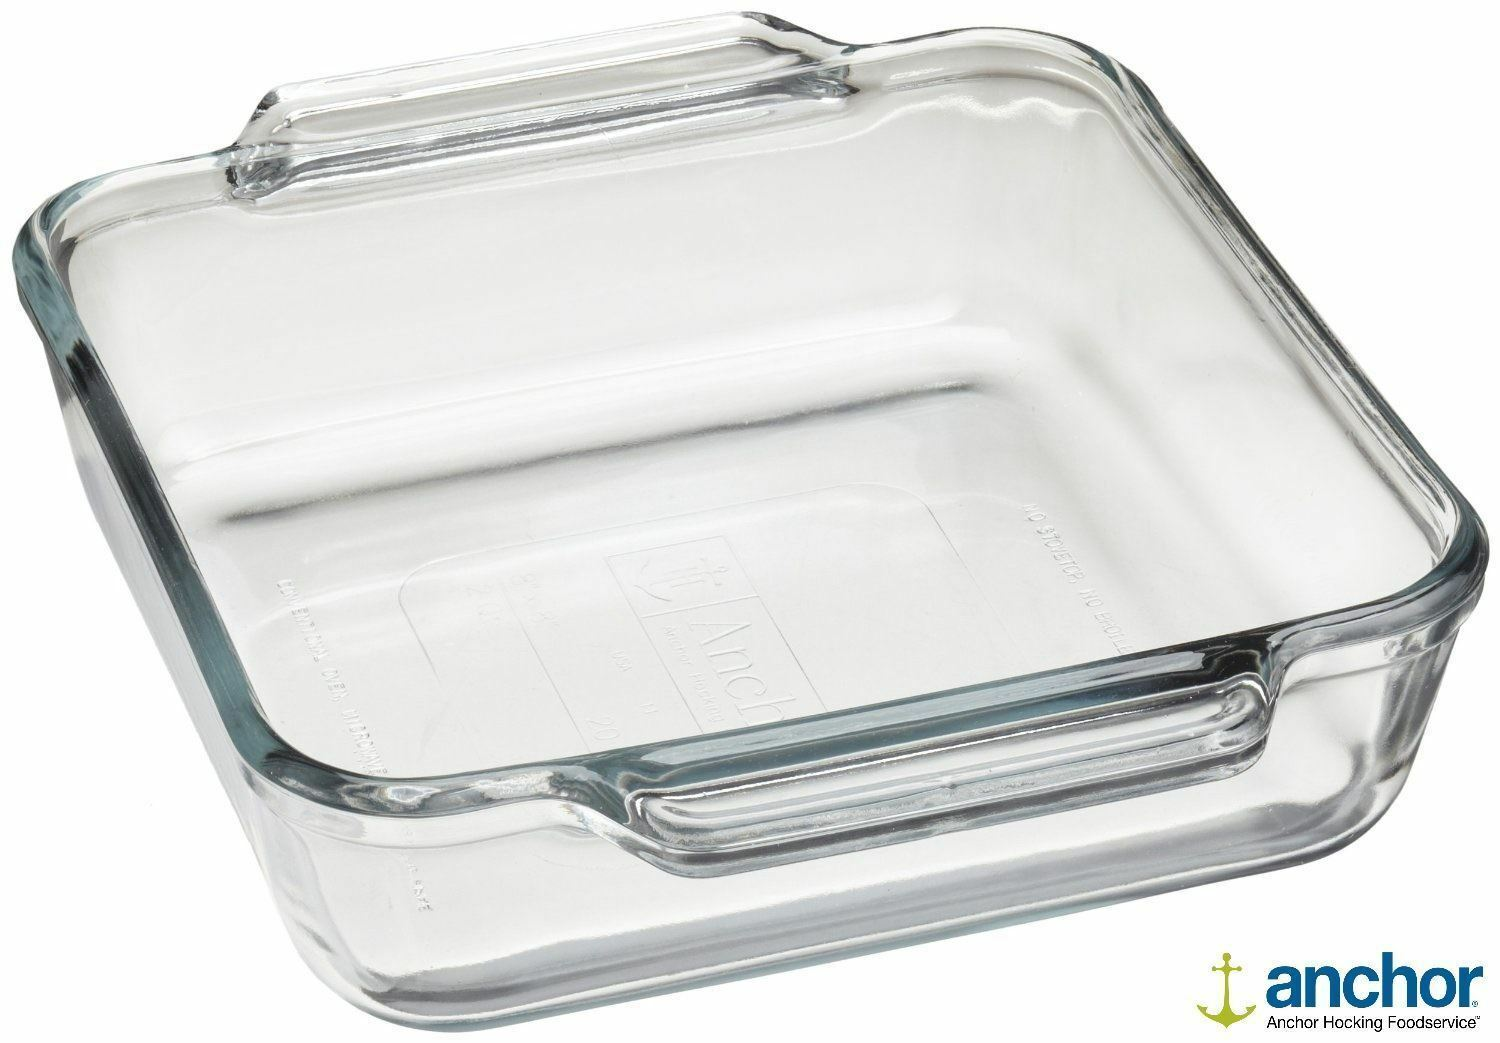 Anchor Hocking 81934 Glass Square Deep Baking Dish Oven Tray Roasting Dish